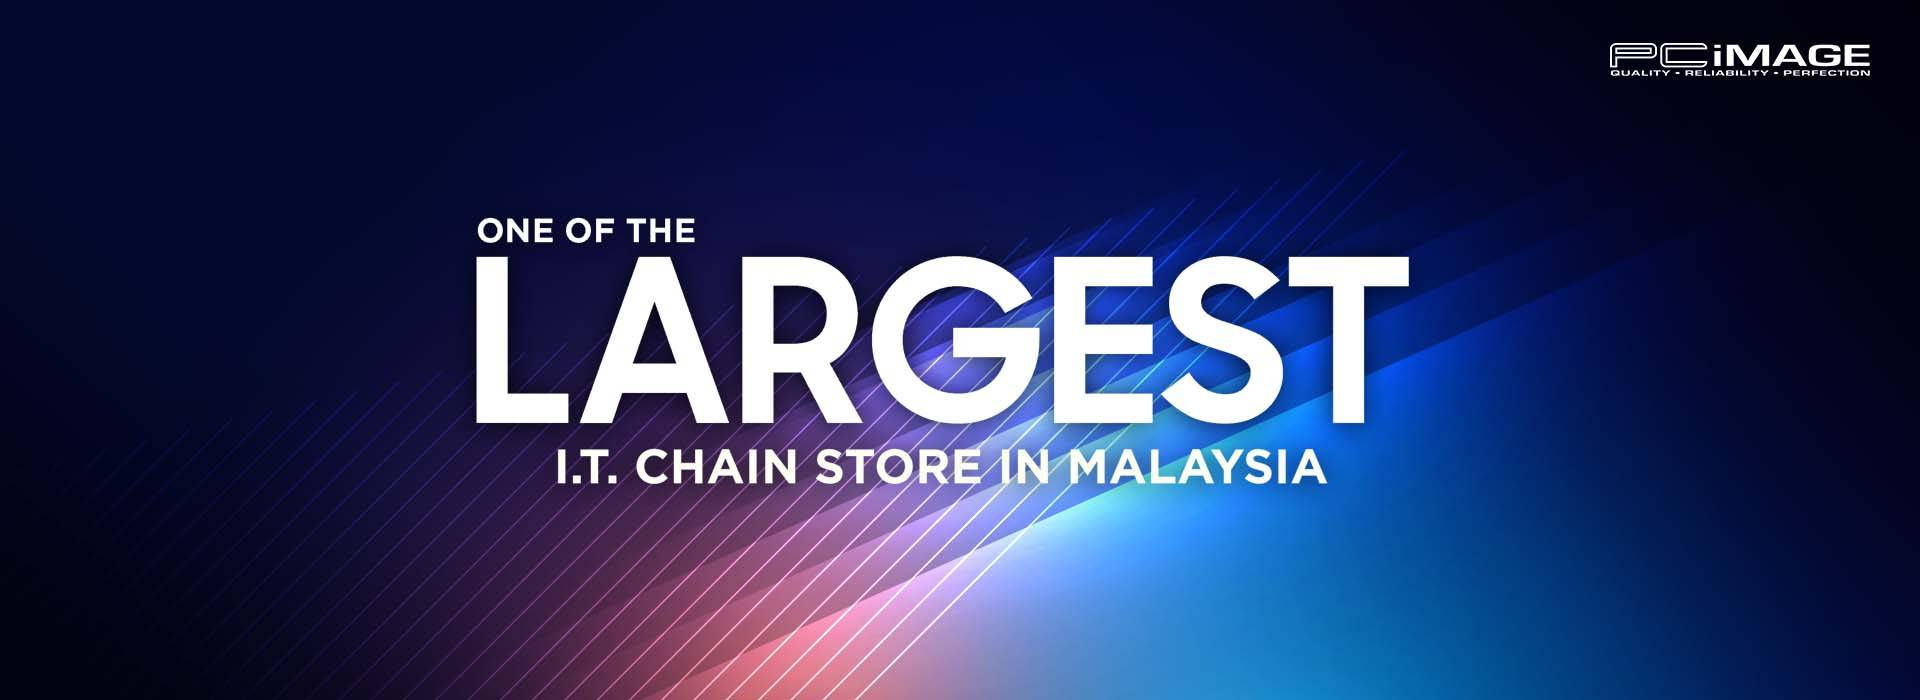 PC Image - One of the Largest I.T. Chain Store in Malaysia